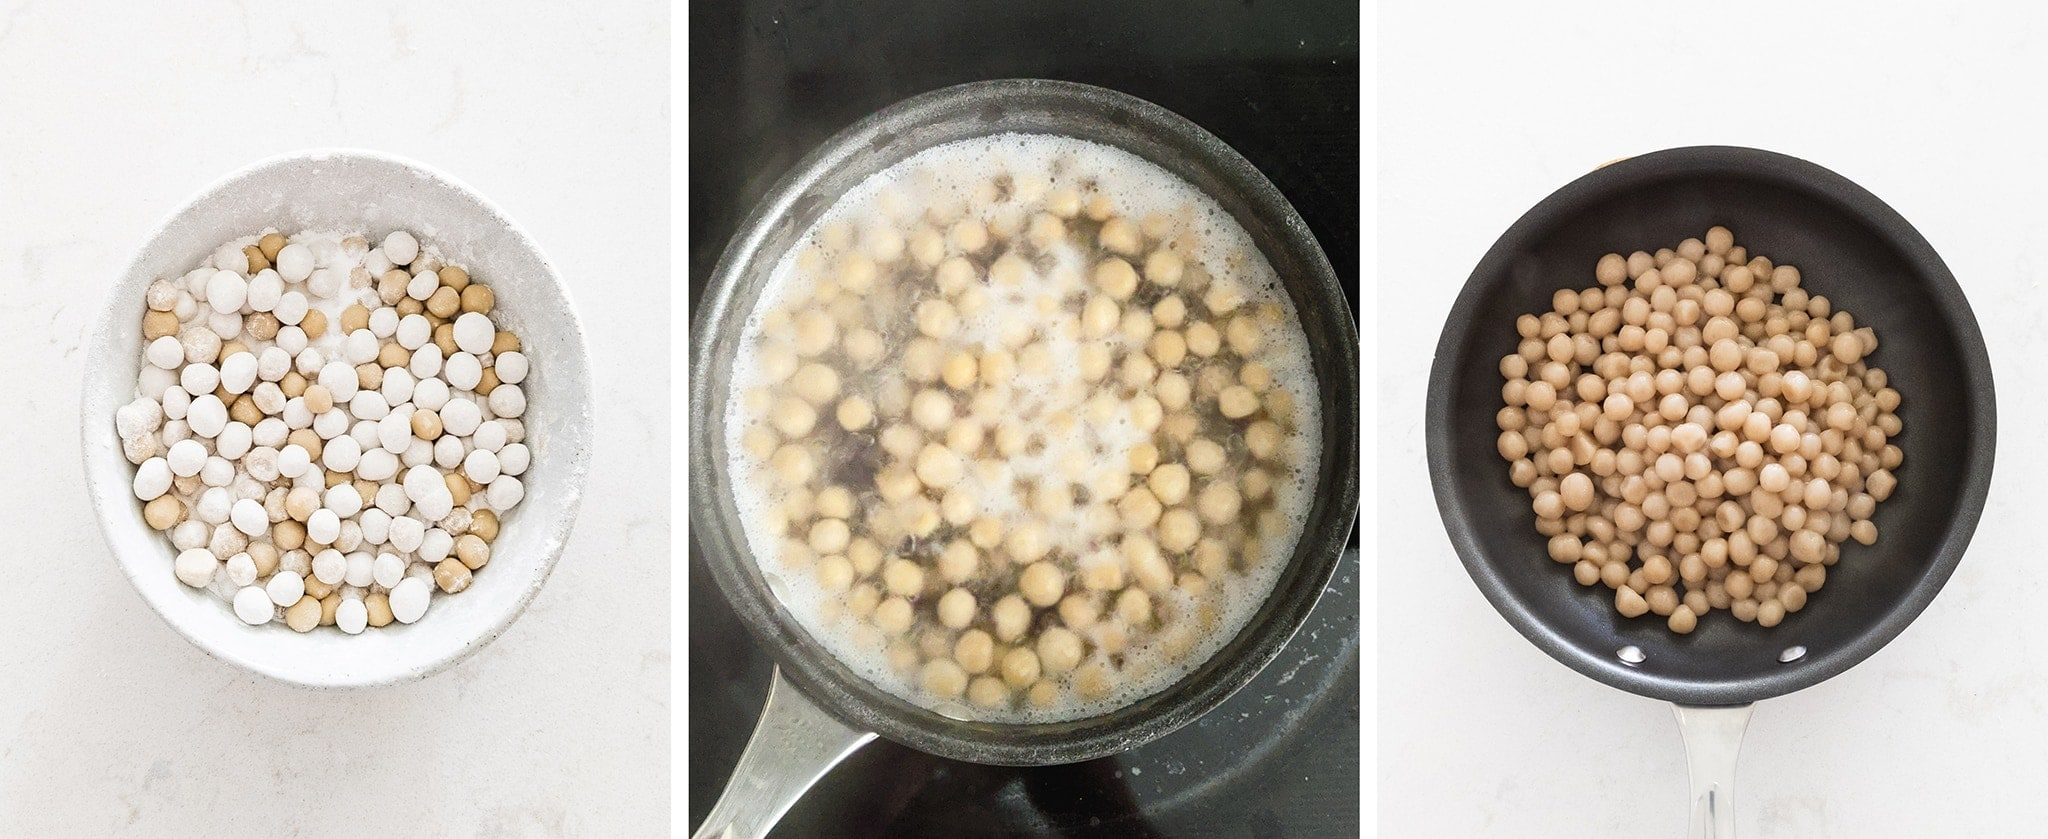 Boiling hand rolled boba pearls